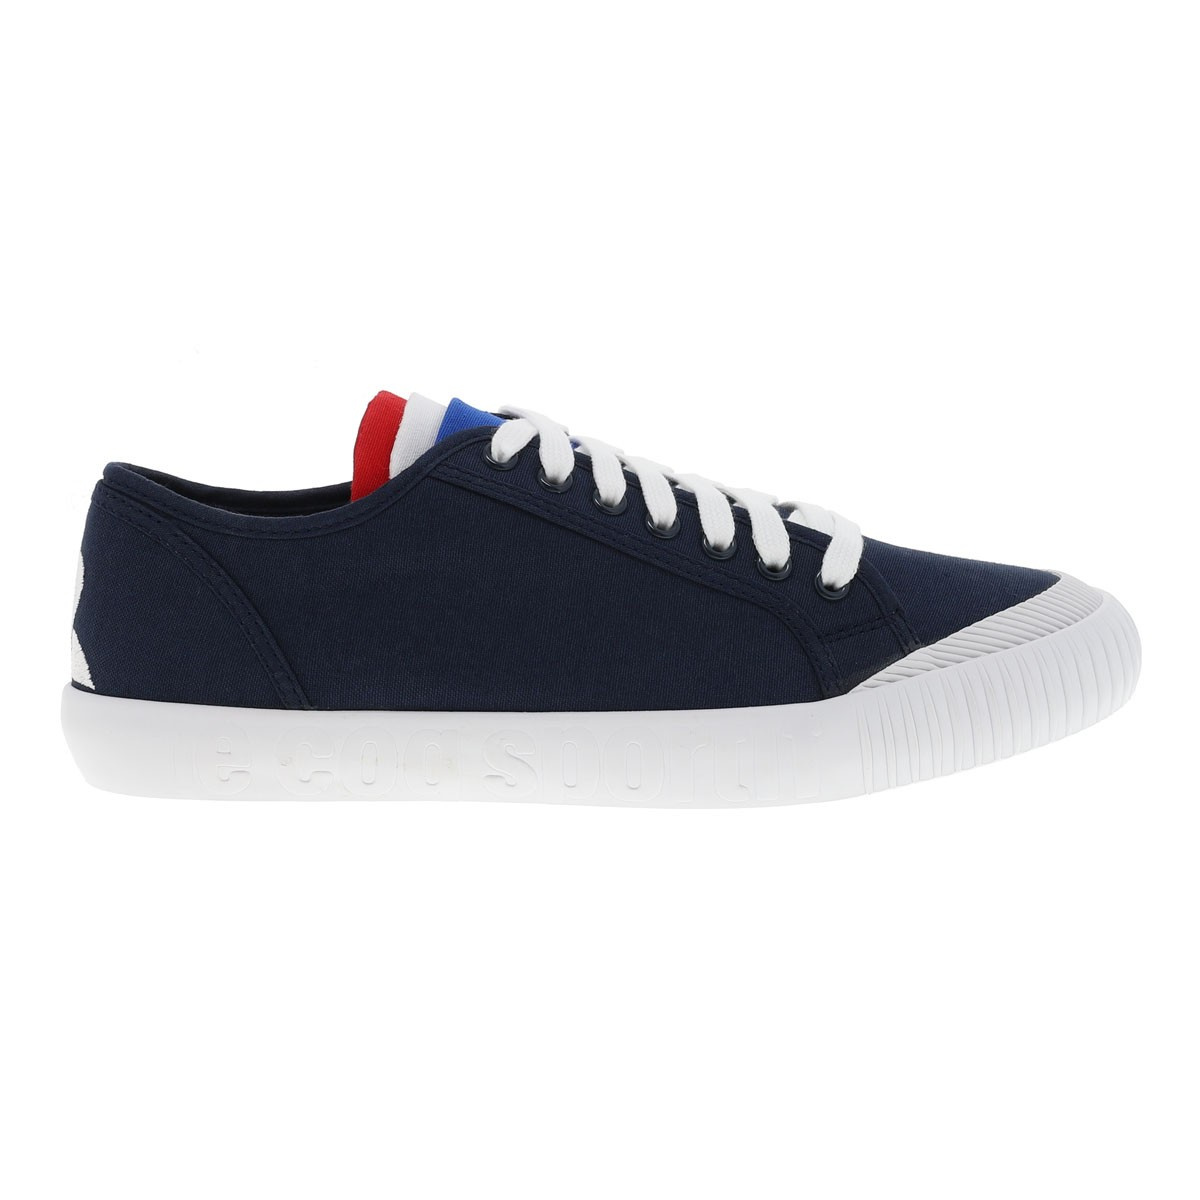 Baskets toile à lacets nationale 2 marine Le Coq Sportif